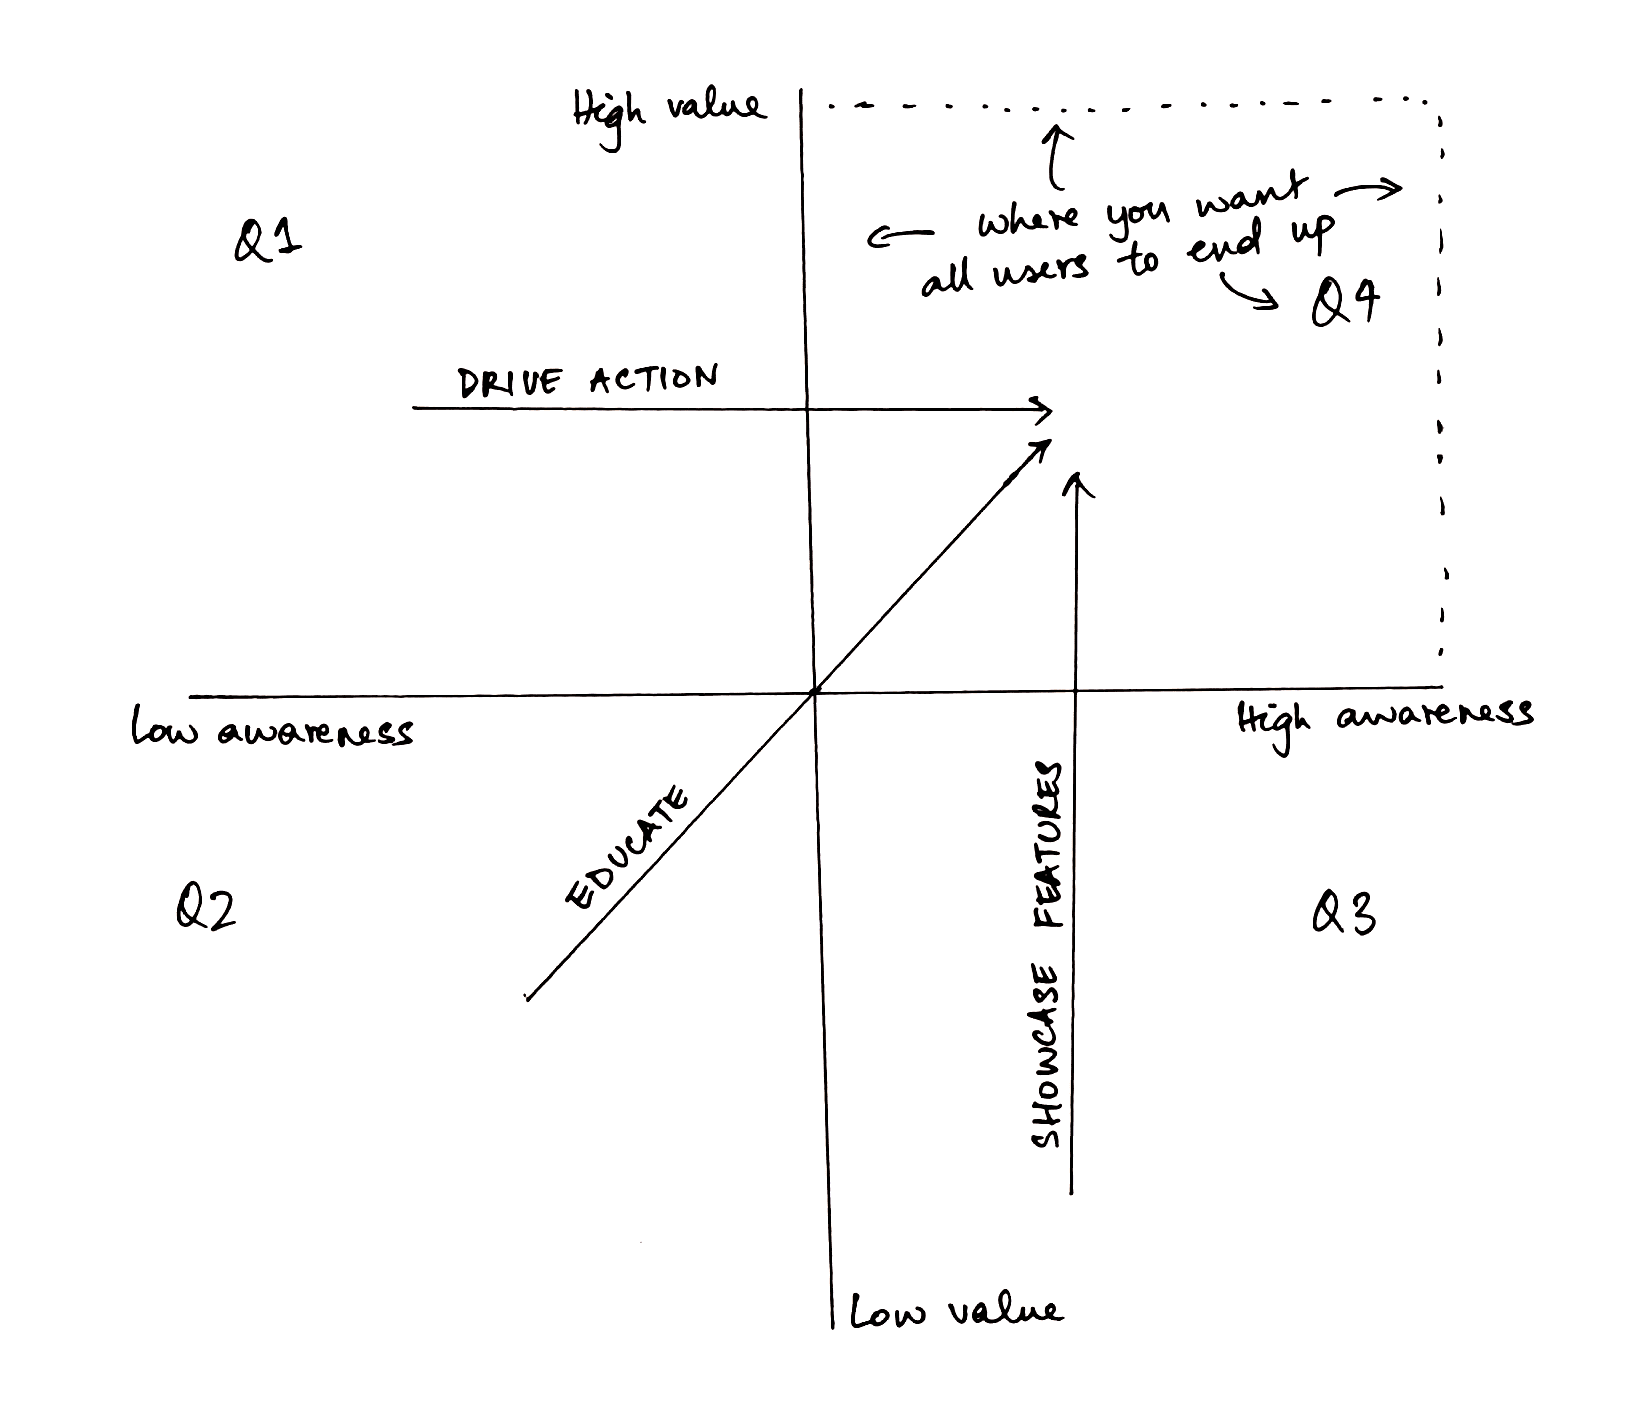 framework to account for awareness in user onboarding